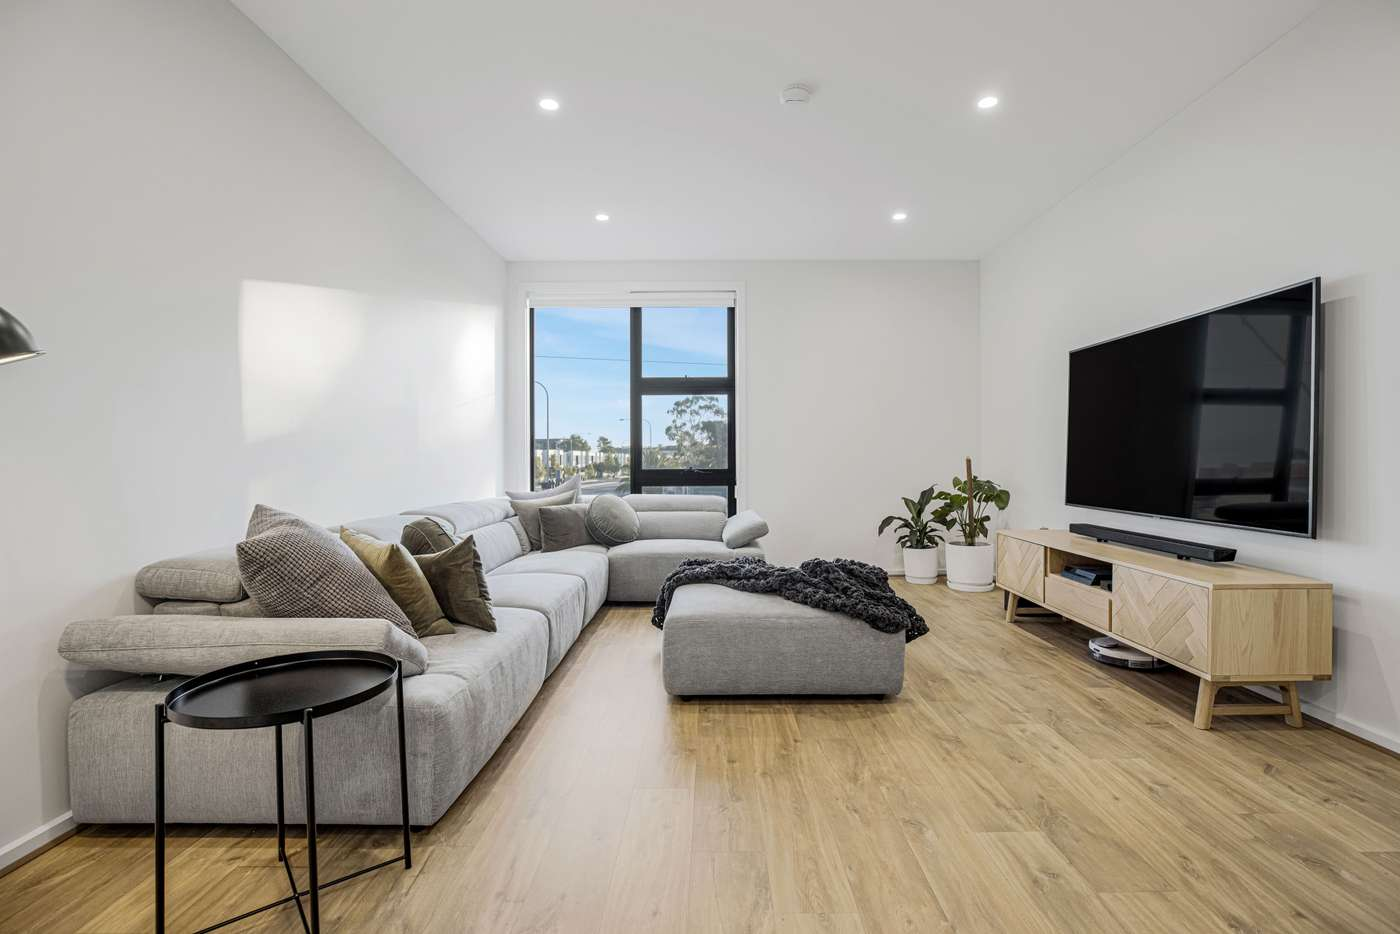 Fifth view of Homely townhouse listing, 10/95C Frederick Road, Royal Park SA 5014